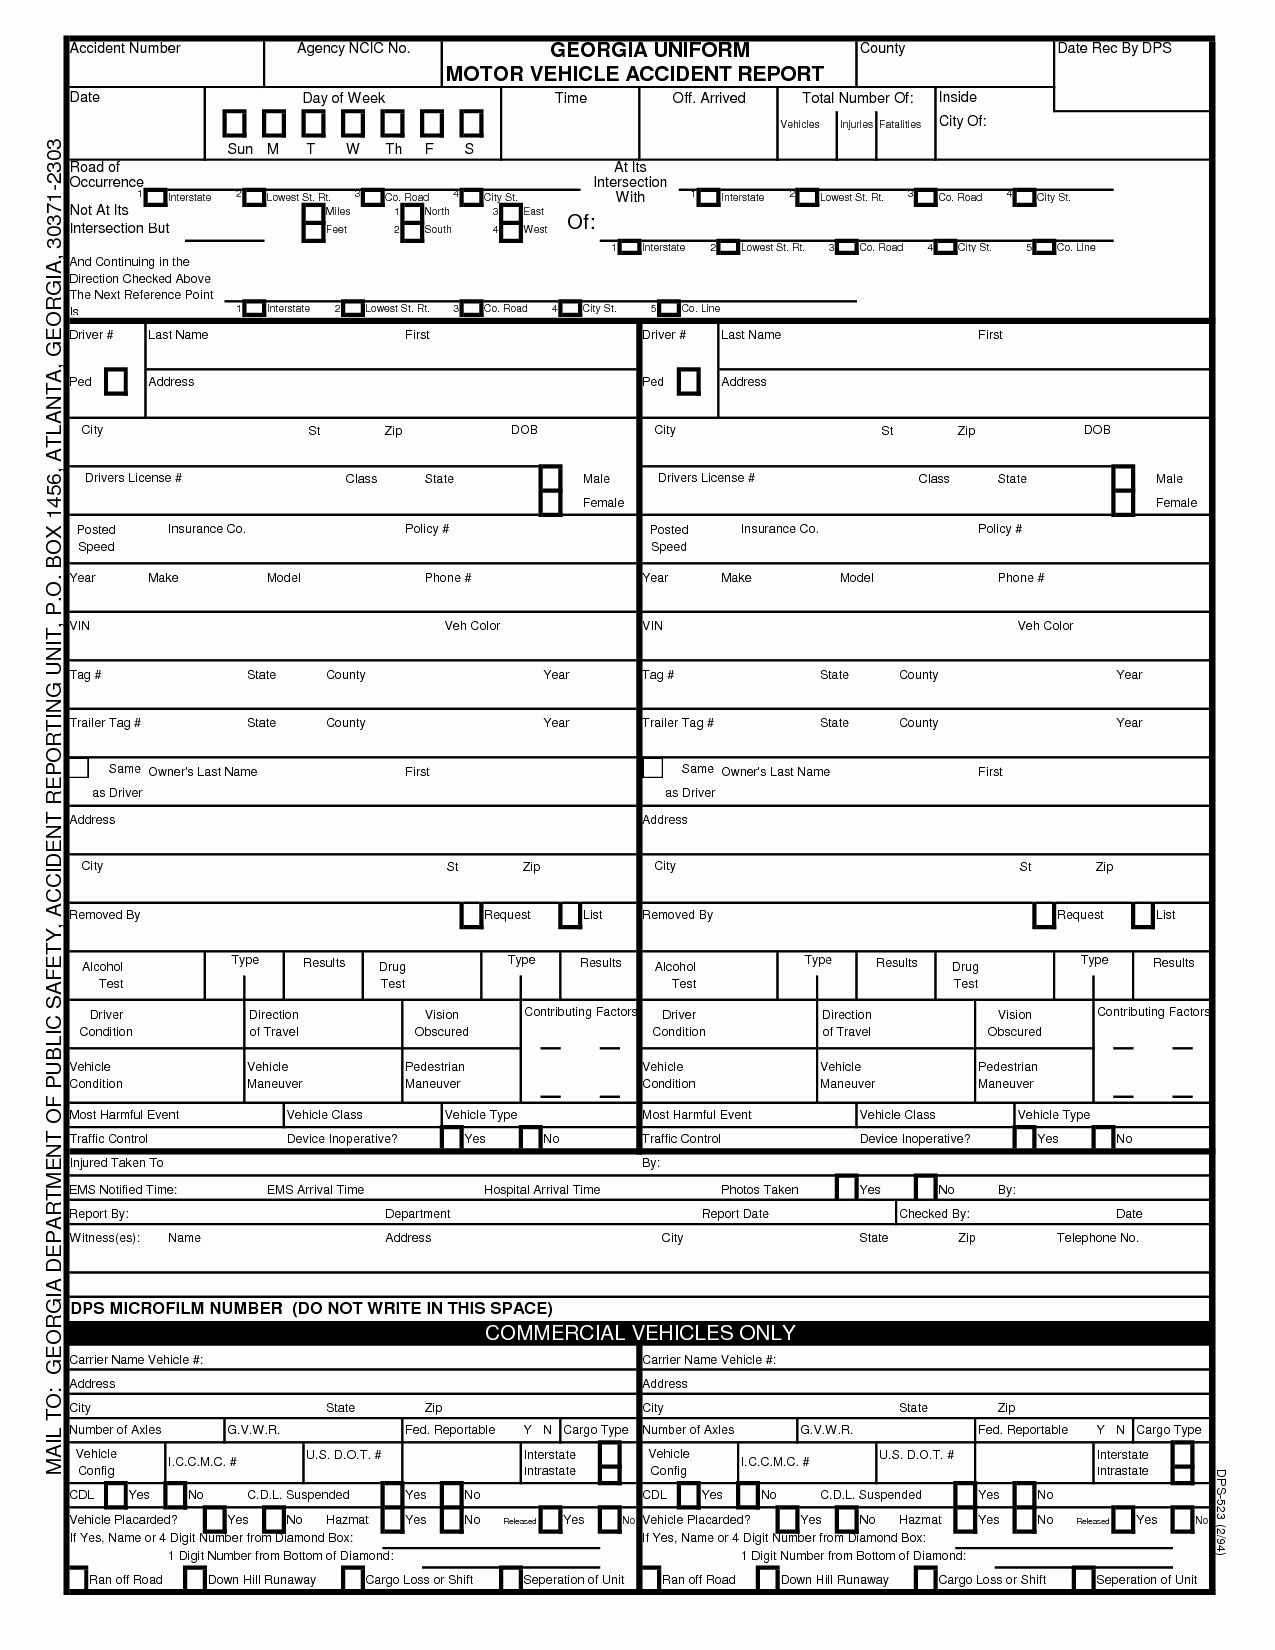 Vehicle Accident Report Form Best Of Tario Motor Vehicle Accident Report Impremedia Business Letter Format Business Case Template Templates